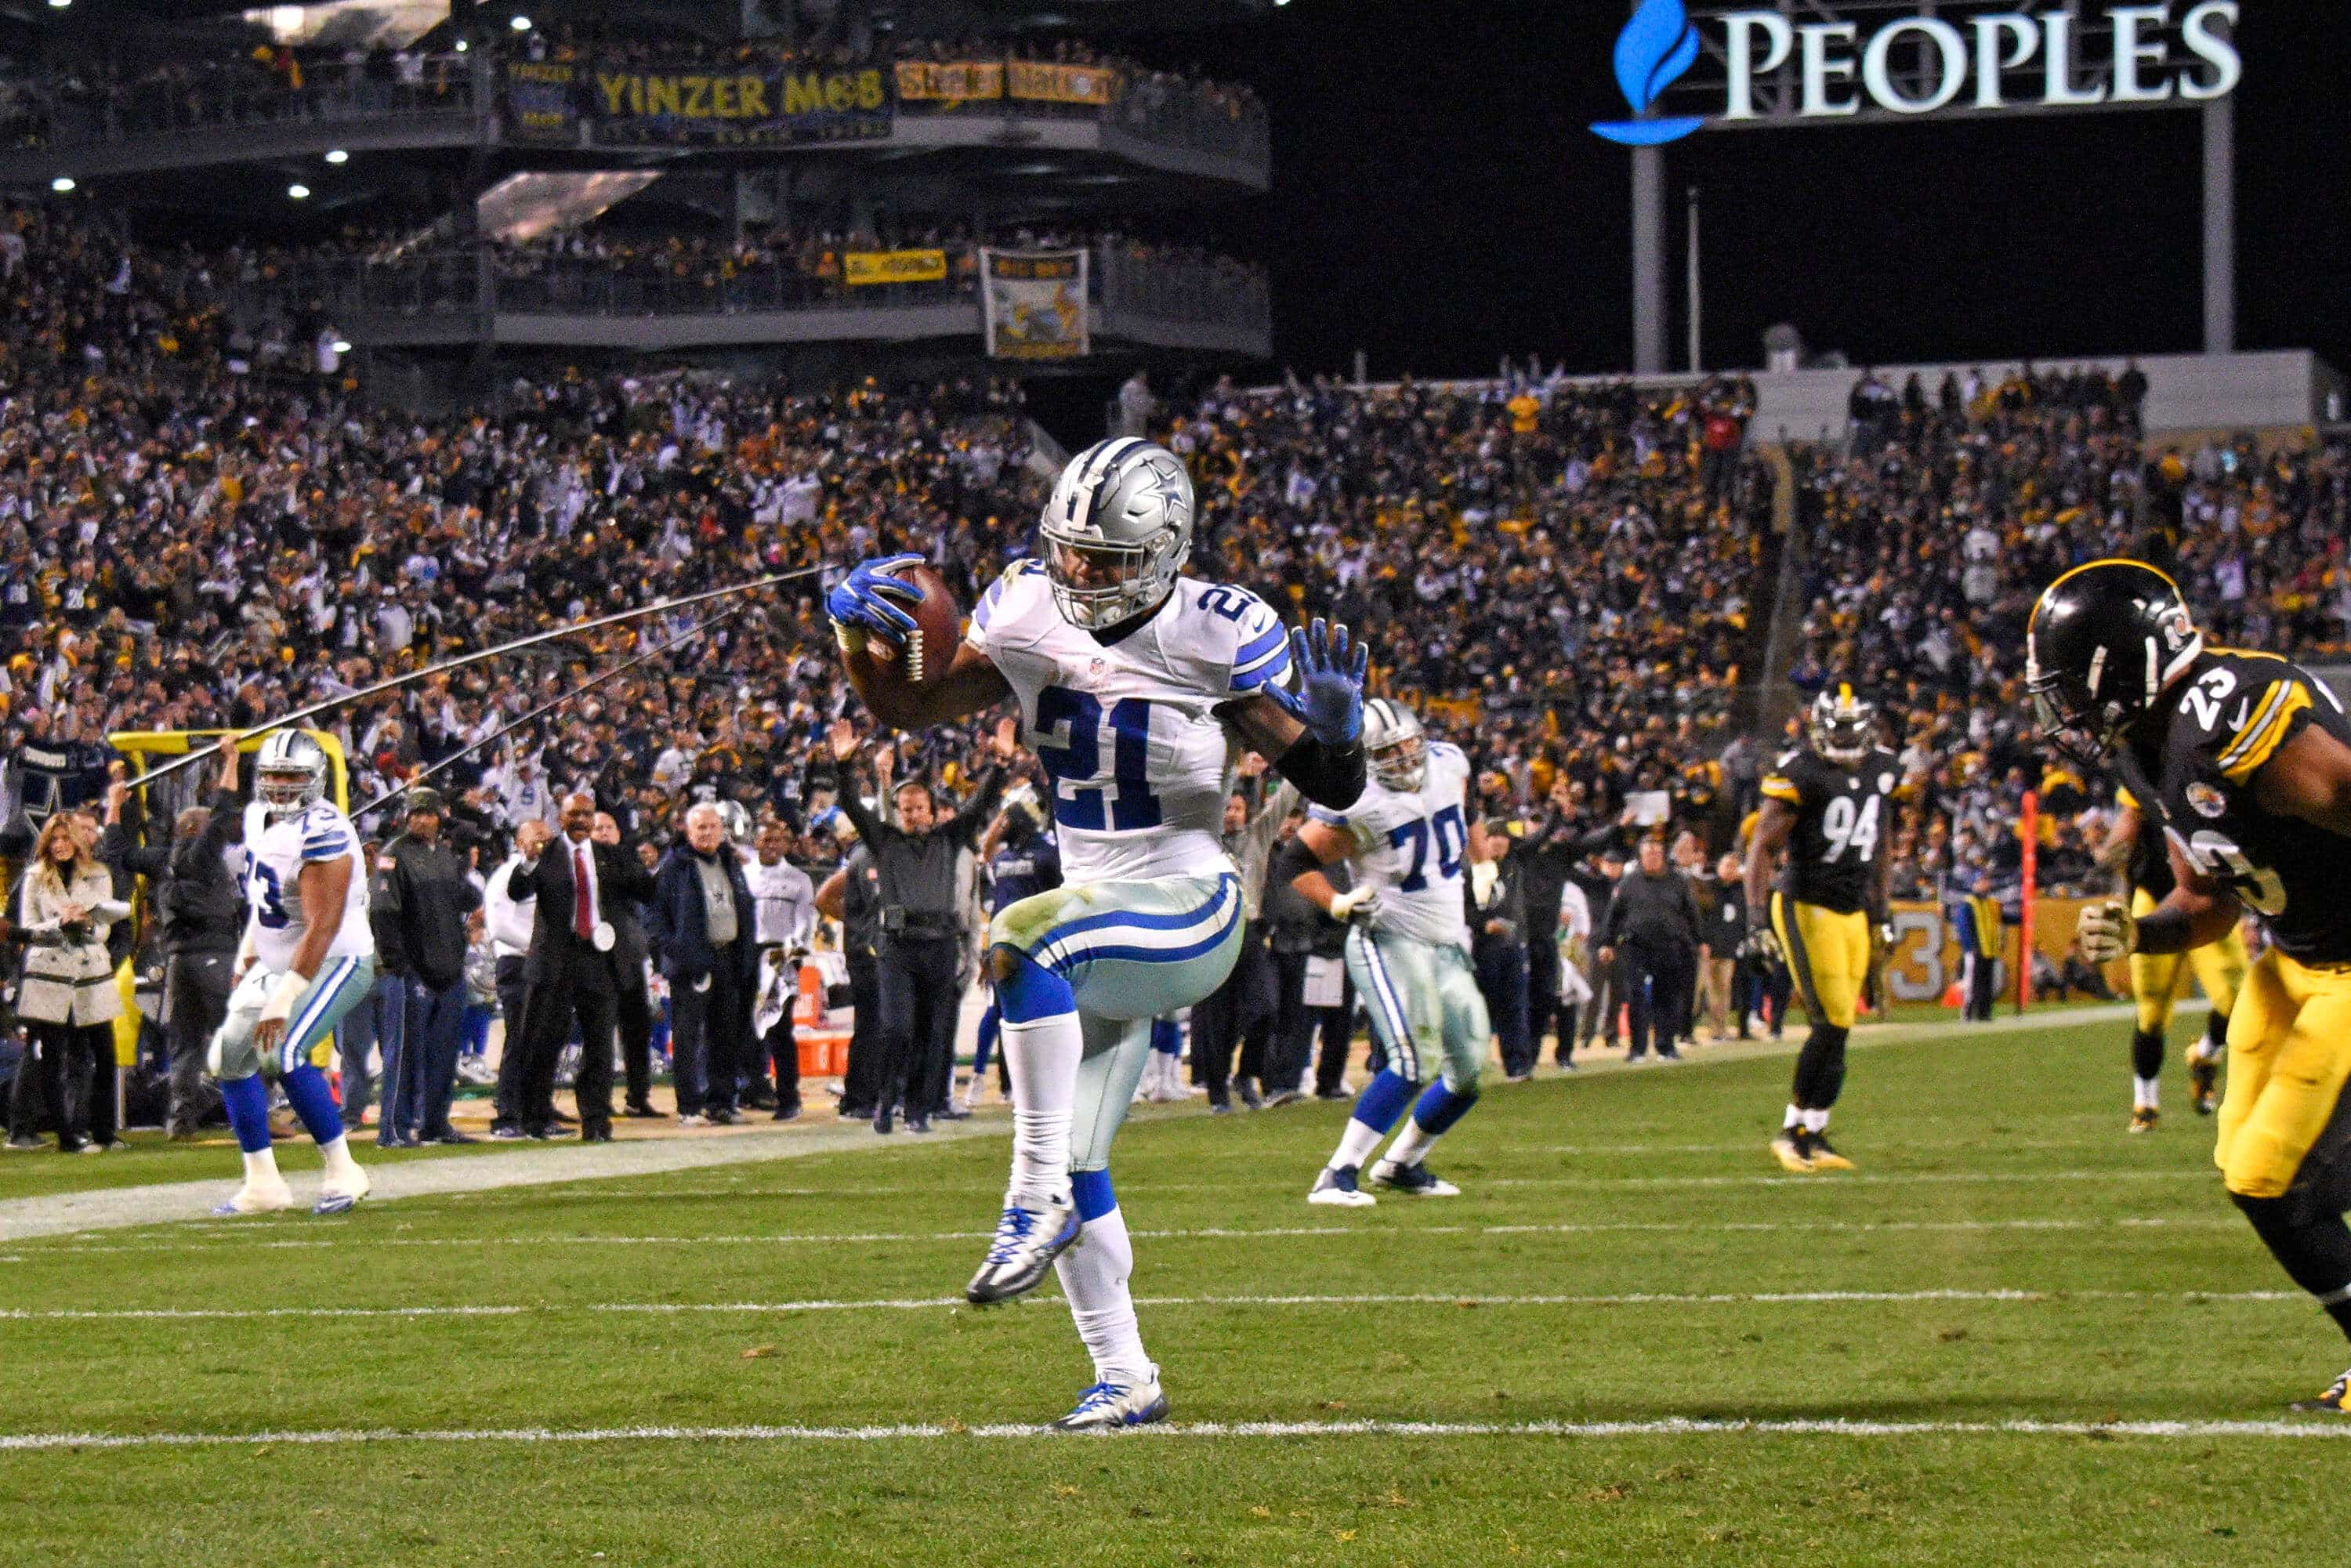 Fantasy Football - #The Sauce #FantasyFootball Sit/Start and Waiver Wire Adds for Week 11